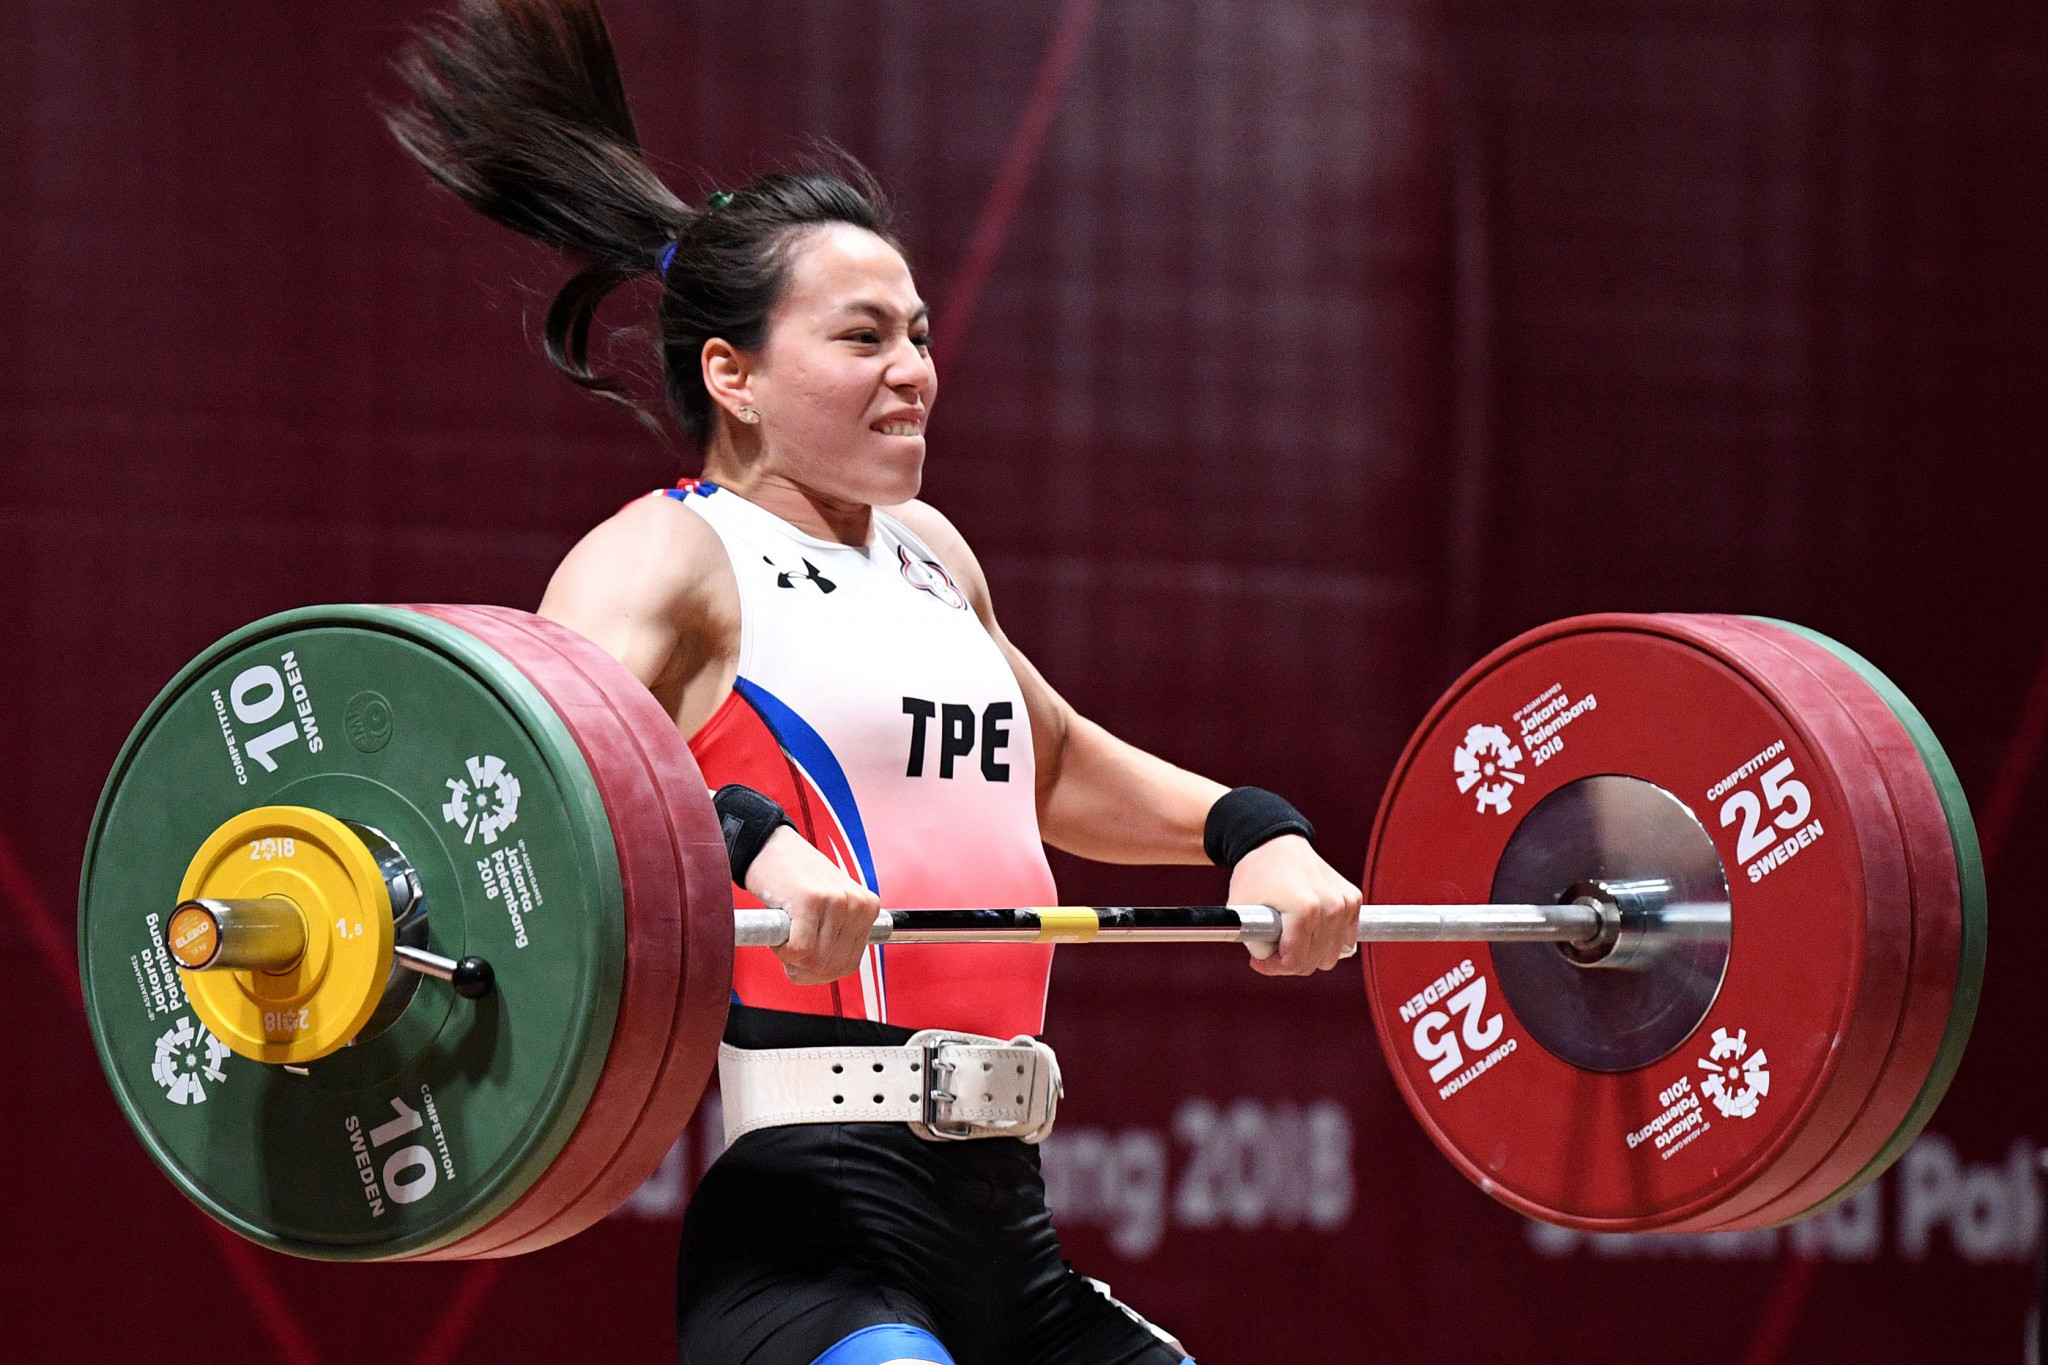 Chinese Taipei's Kuo Hsing-chun broke three world records en route to claiming the women's 59 kilograms title at the Asian Weightlifting Championships in Ningbo in China today ©Getty Images